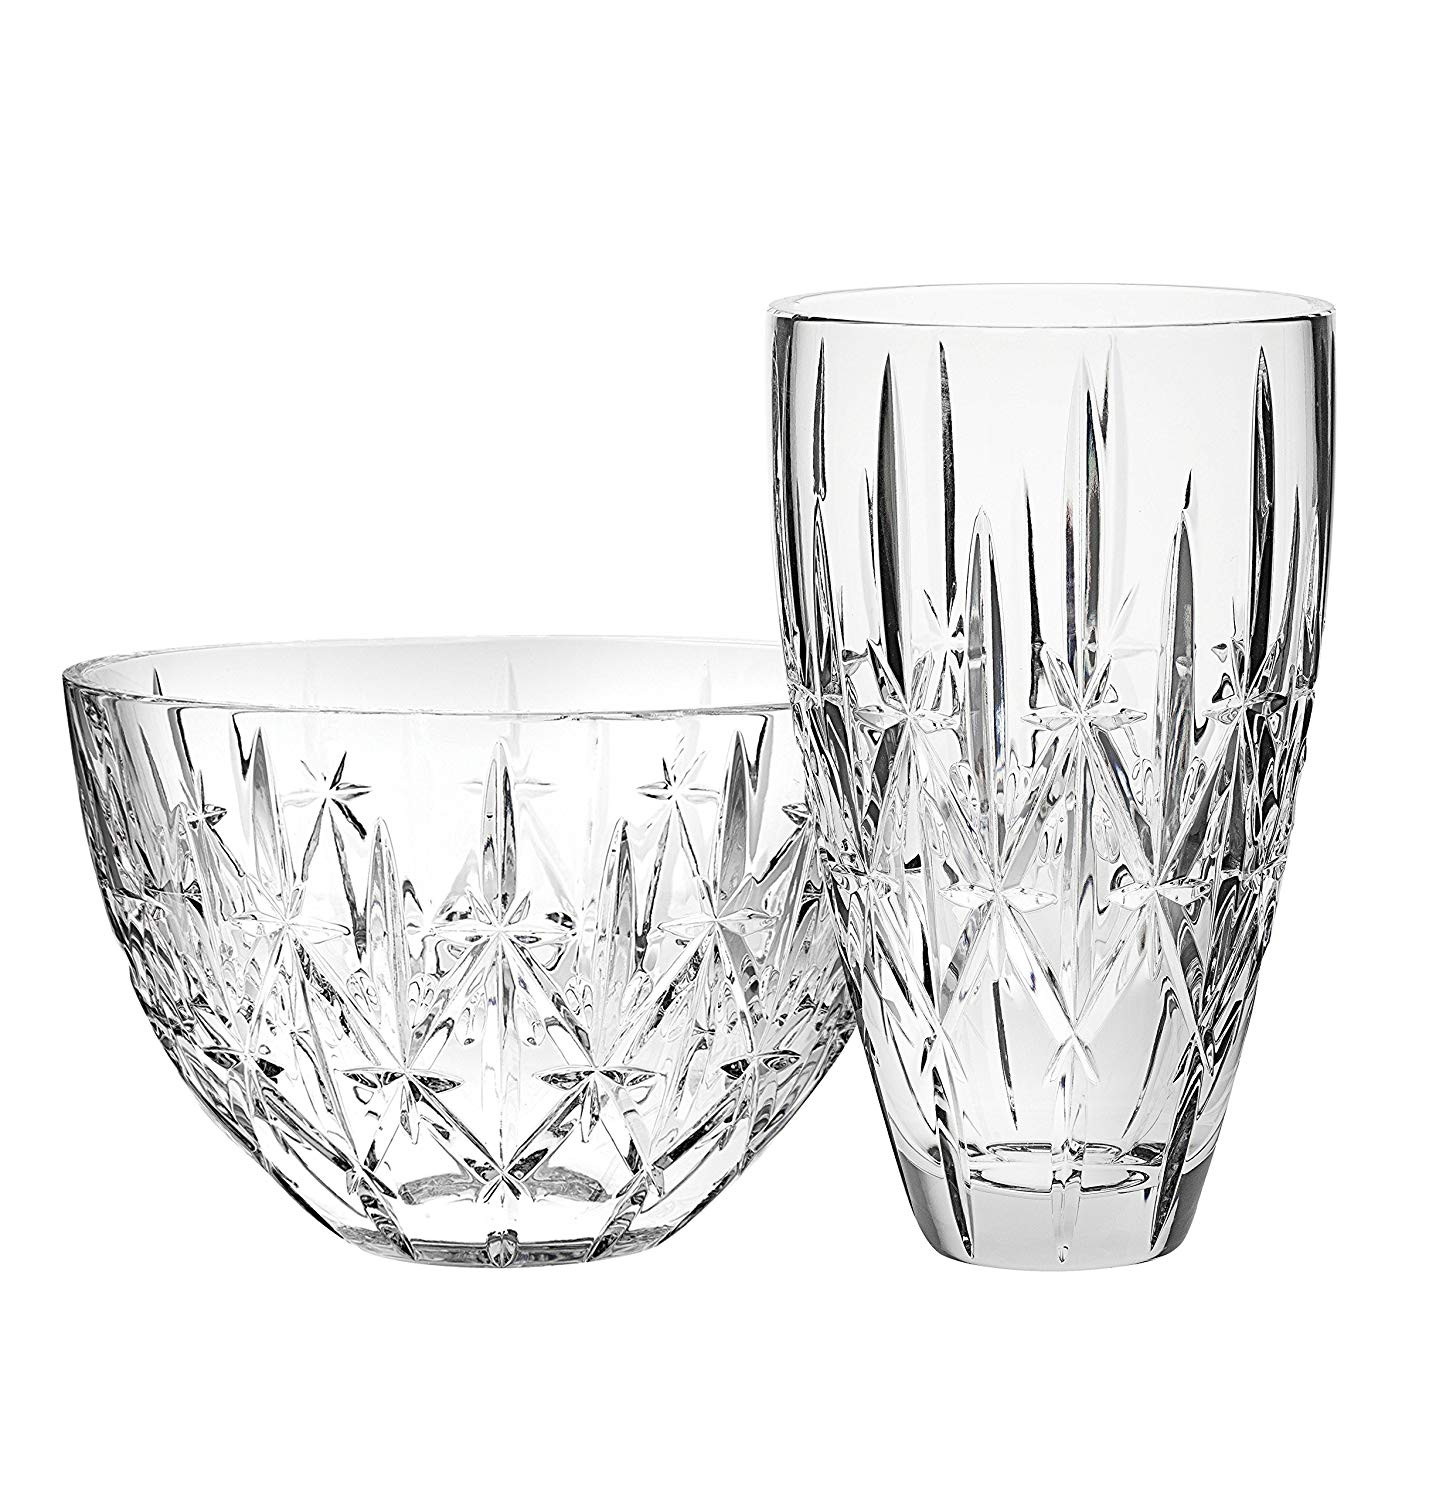 marquis by waterford sheridan flared vase of amazon com marquis by waterford sparkle bowl 9 home kitchen with 91ze4xzhccl sl1500